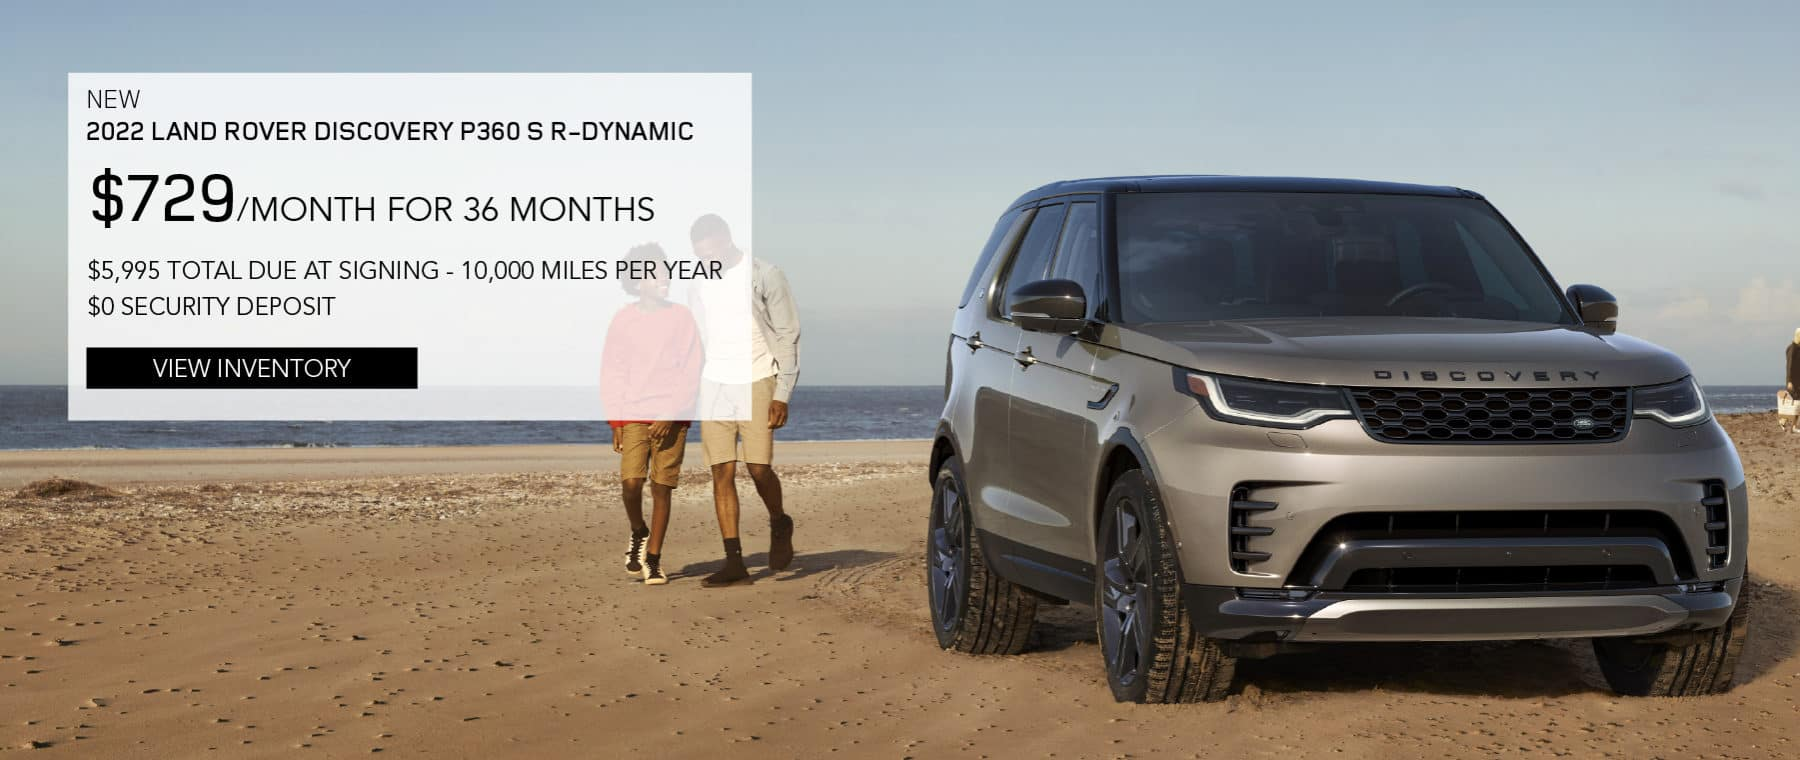 NEW 2022 LAND ROVER DISCOVERY P360 S R-DYNAMIC. $729 PER MONTH. 36 MONTH LEASE TERM. $5,995 CASH DUE AT SIGNING. $0 SECURITY DEPOSIT. 10,000 MILES PER YEAR. EXCLUDES RETAILER FEES, TAXES, TITLE AND REGISTRATION FEES, PROCESSING FEE AND ANY EMISSION TESTING CHARGE. ENDS 8/2/2021. VIEW INVENTORY. BROWN LAND ROVER DISCOVERY PARKED ON THE BEACH.